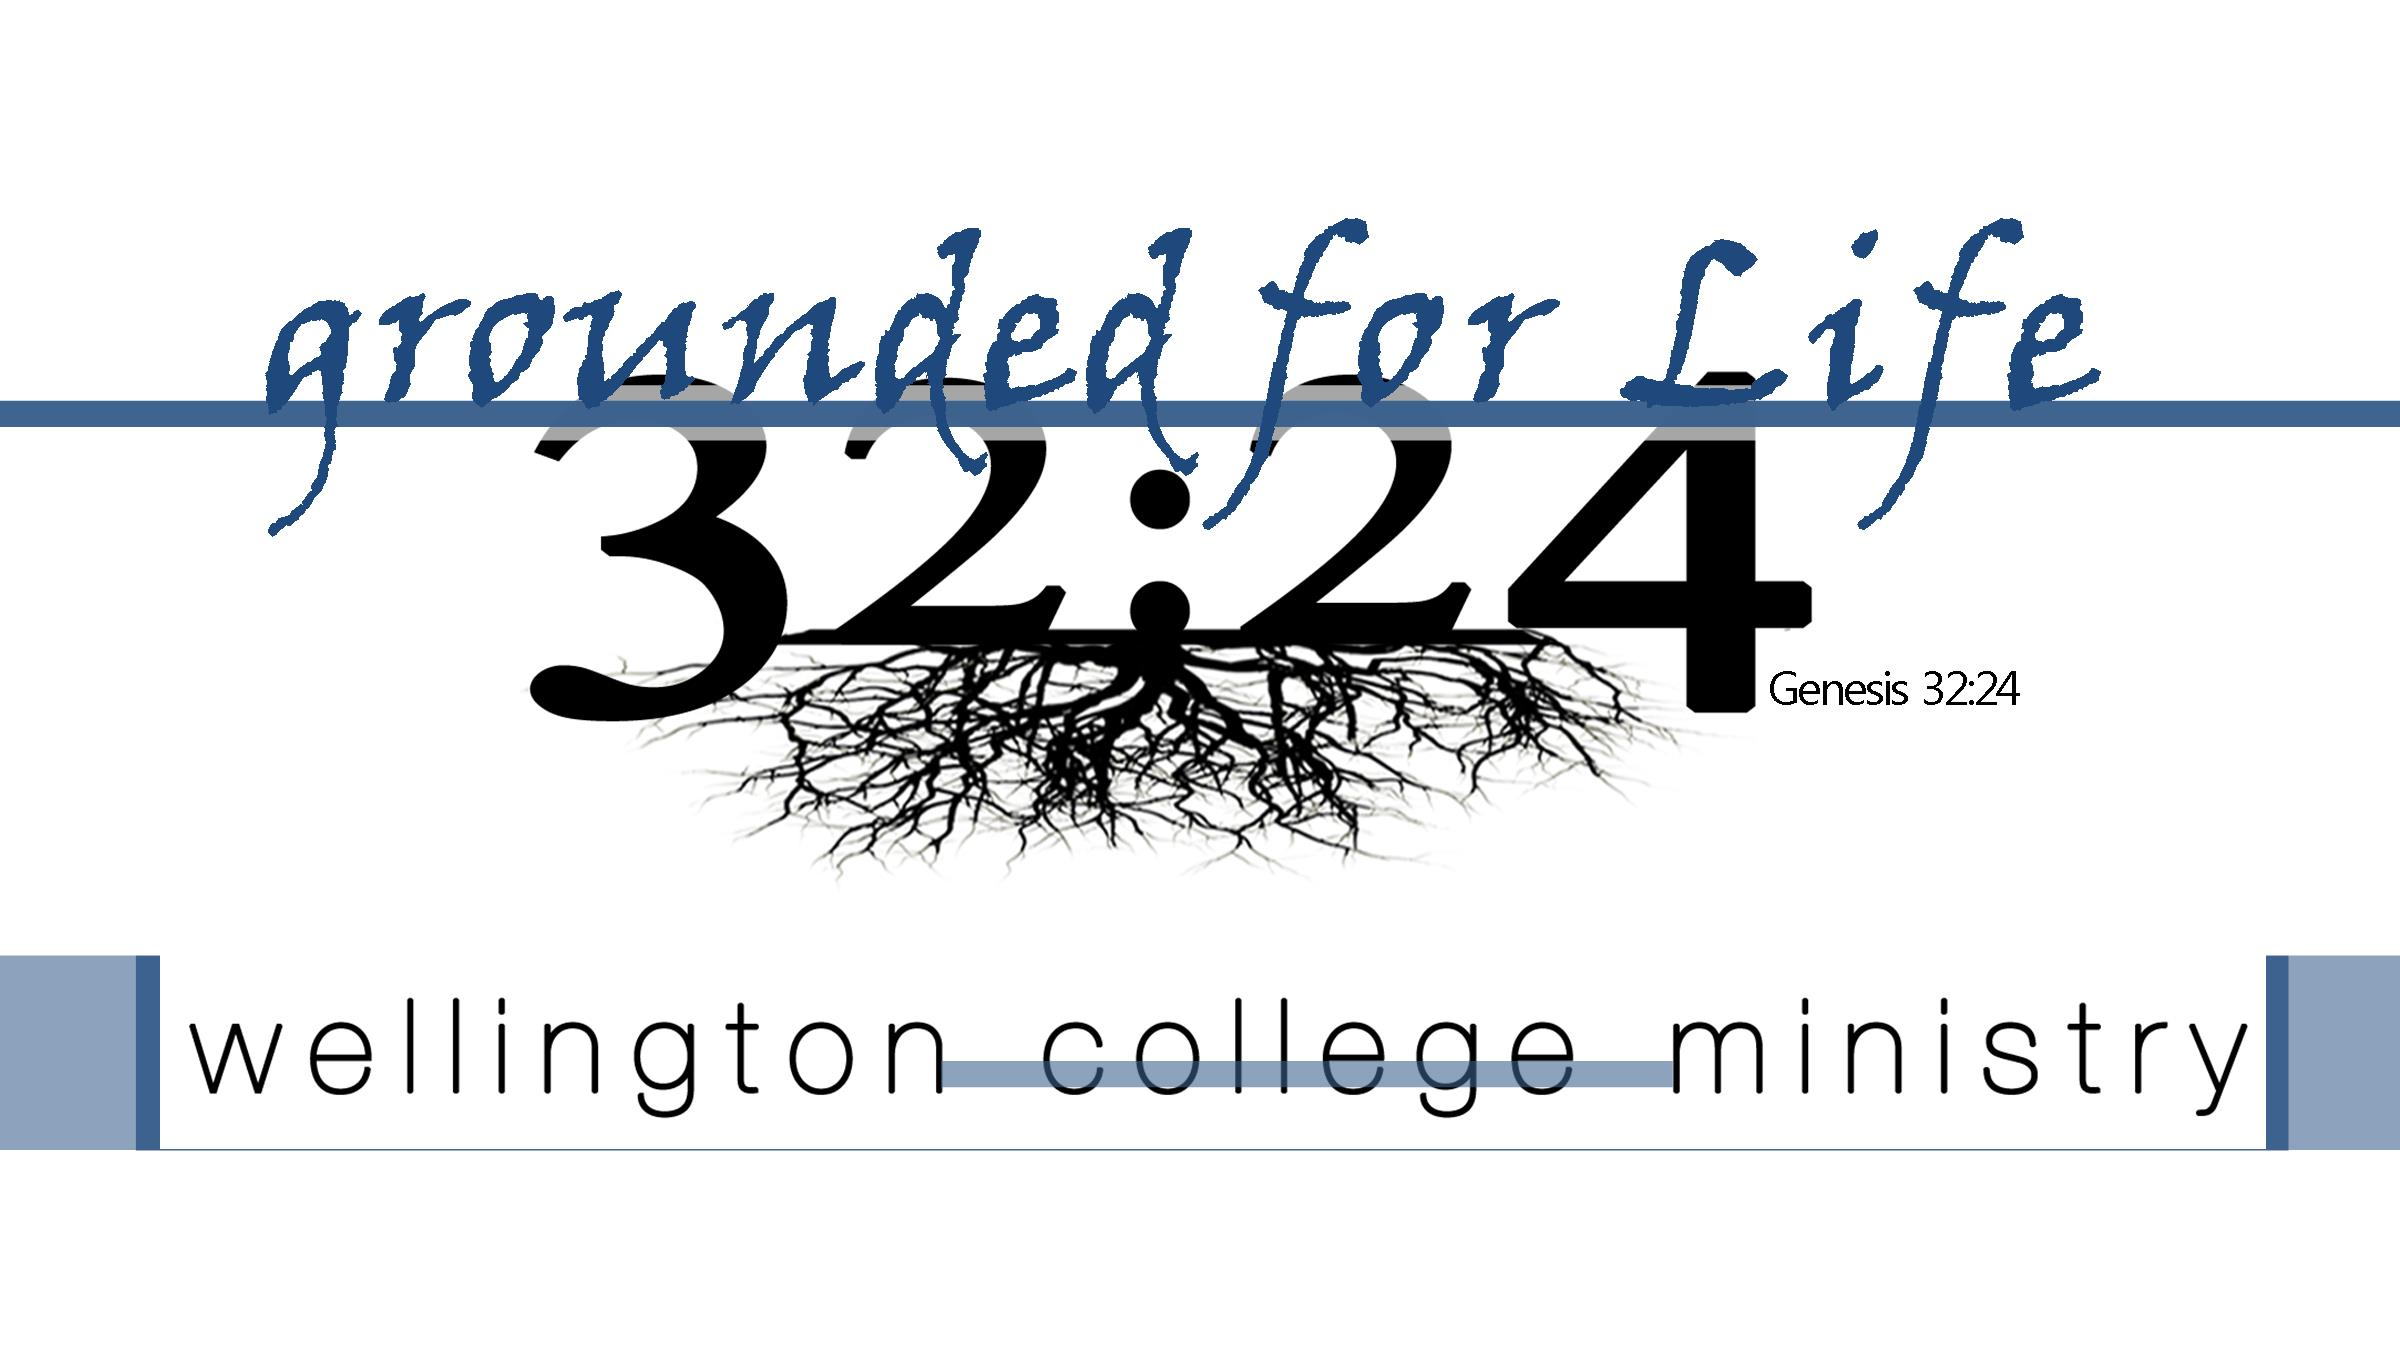 3224 College Service Sundays at 5 p.m. - resumes February 2014